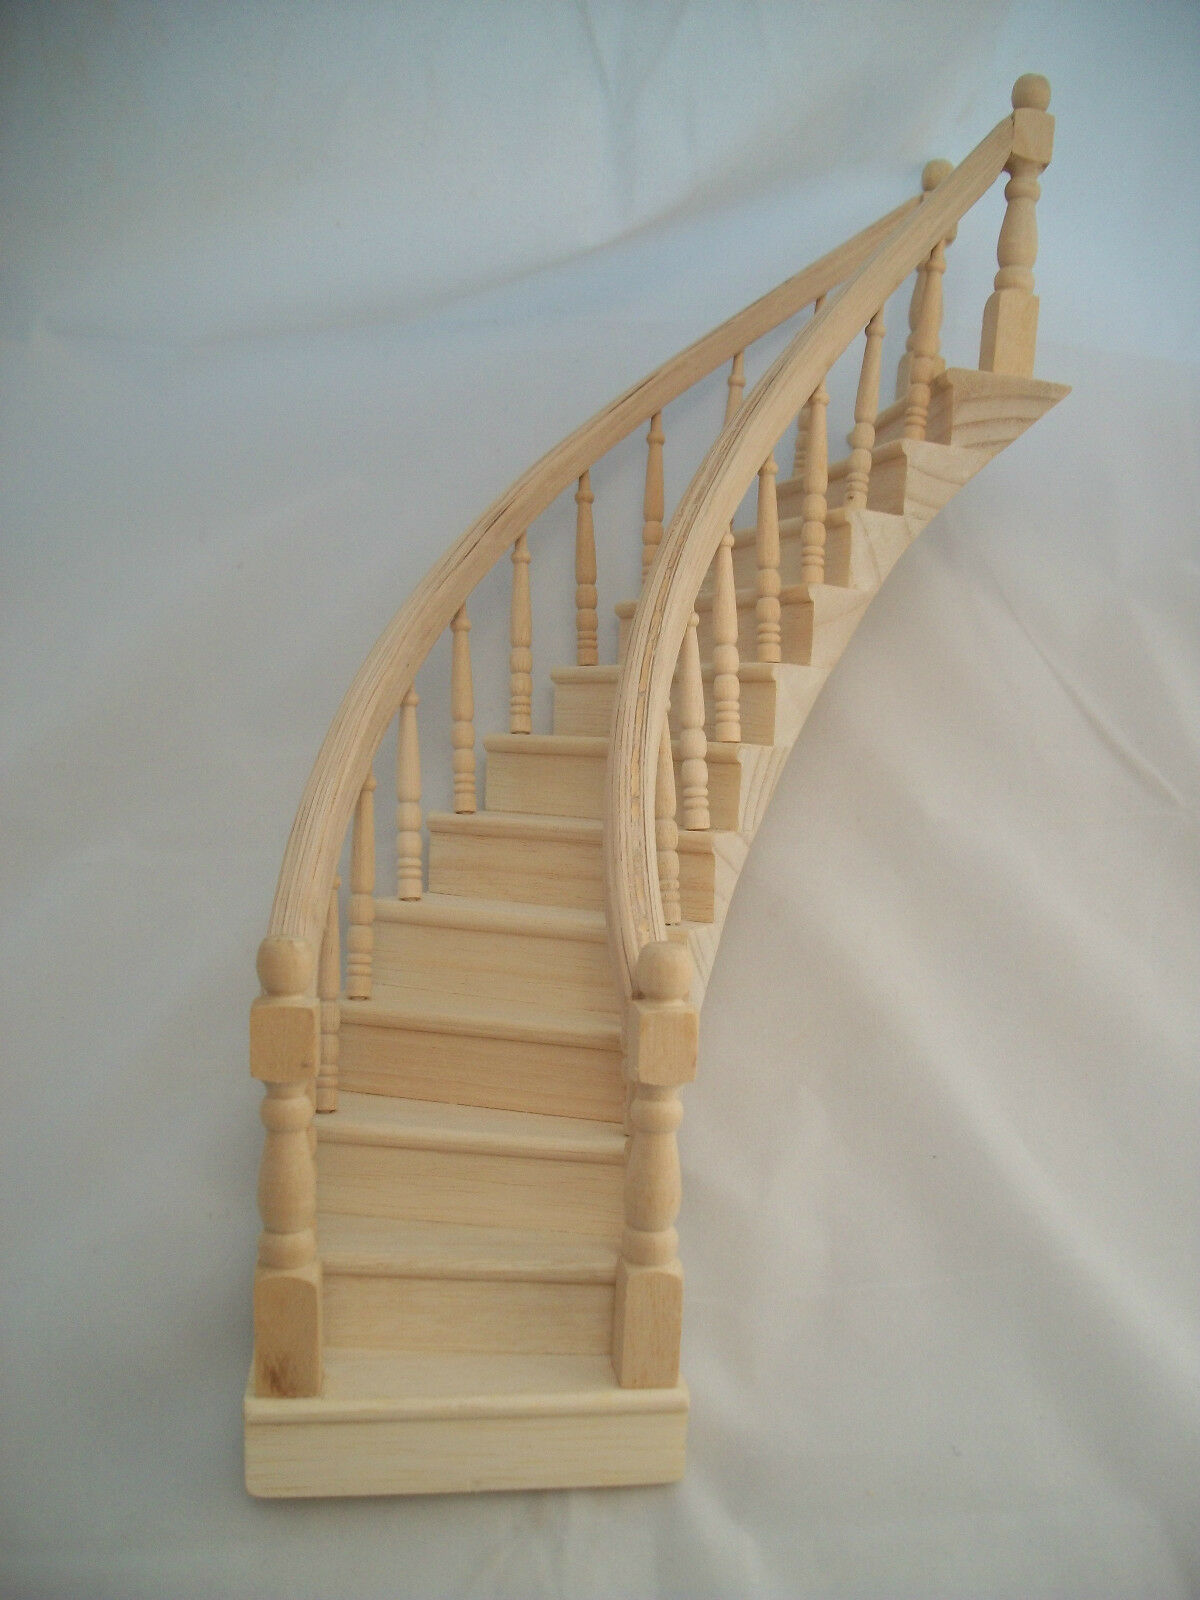 SPIRAL STAIRFall Classic Holz dollhaus miniature Right  CLA70222  1 12 scale